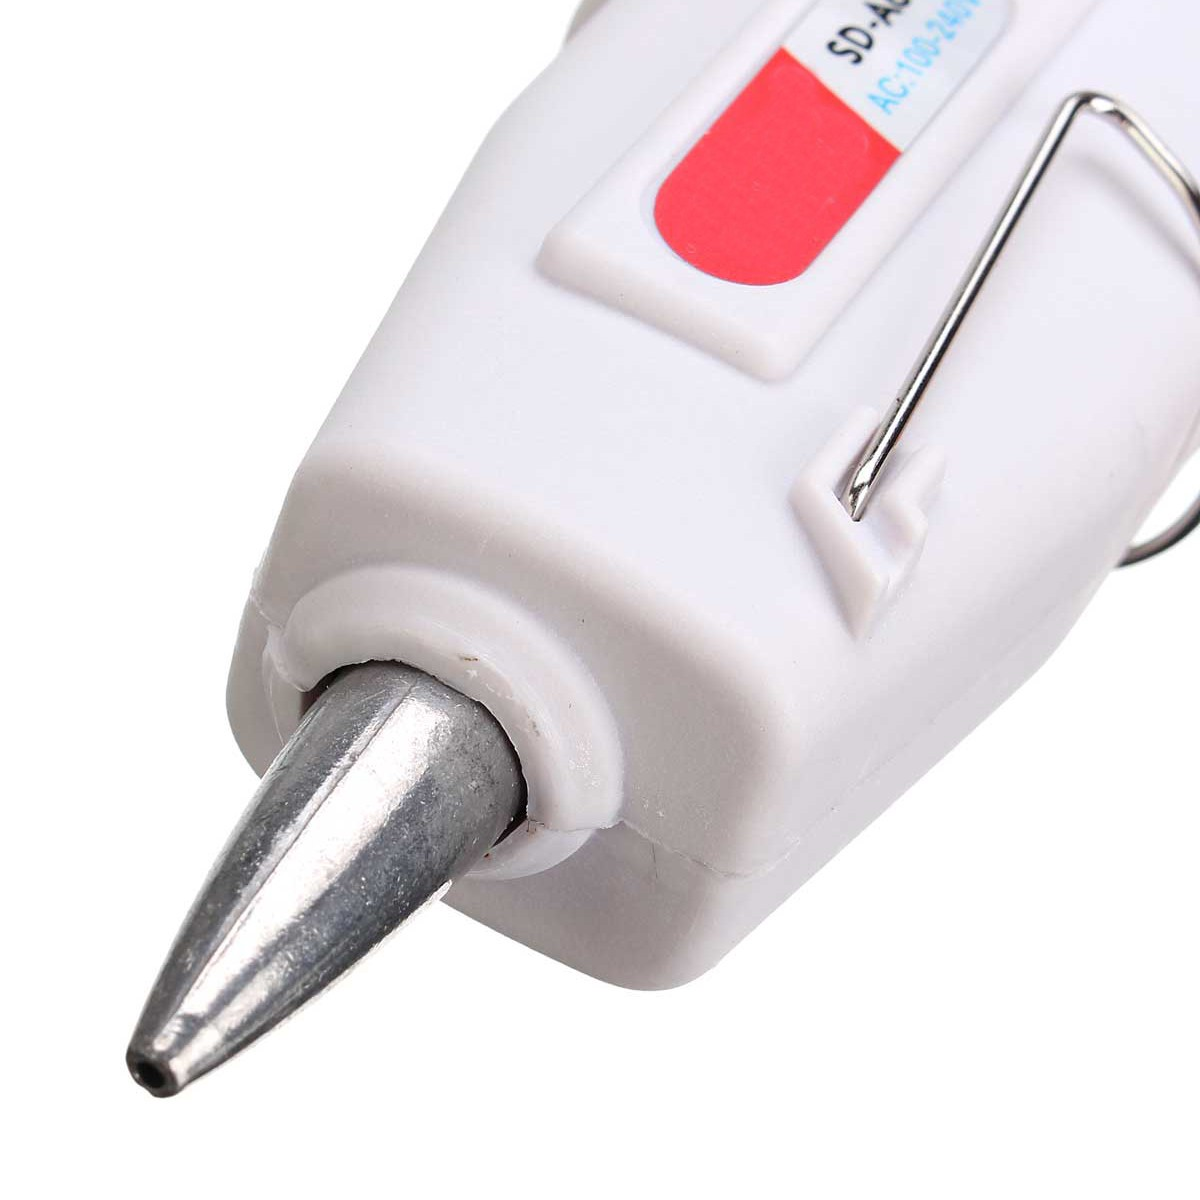 20W White Heating Hot Melt Electric Glue Gun Crafts Repair Tools